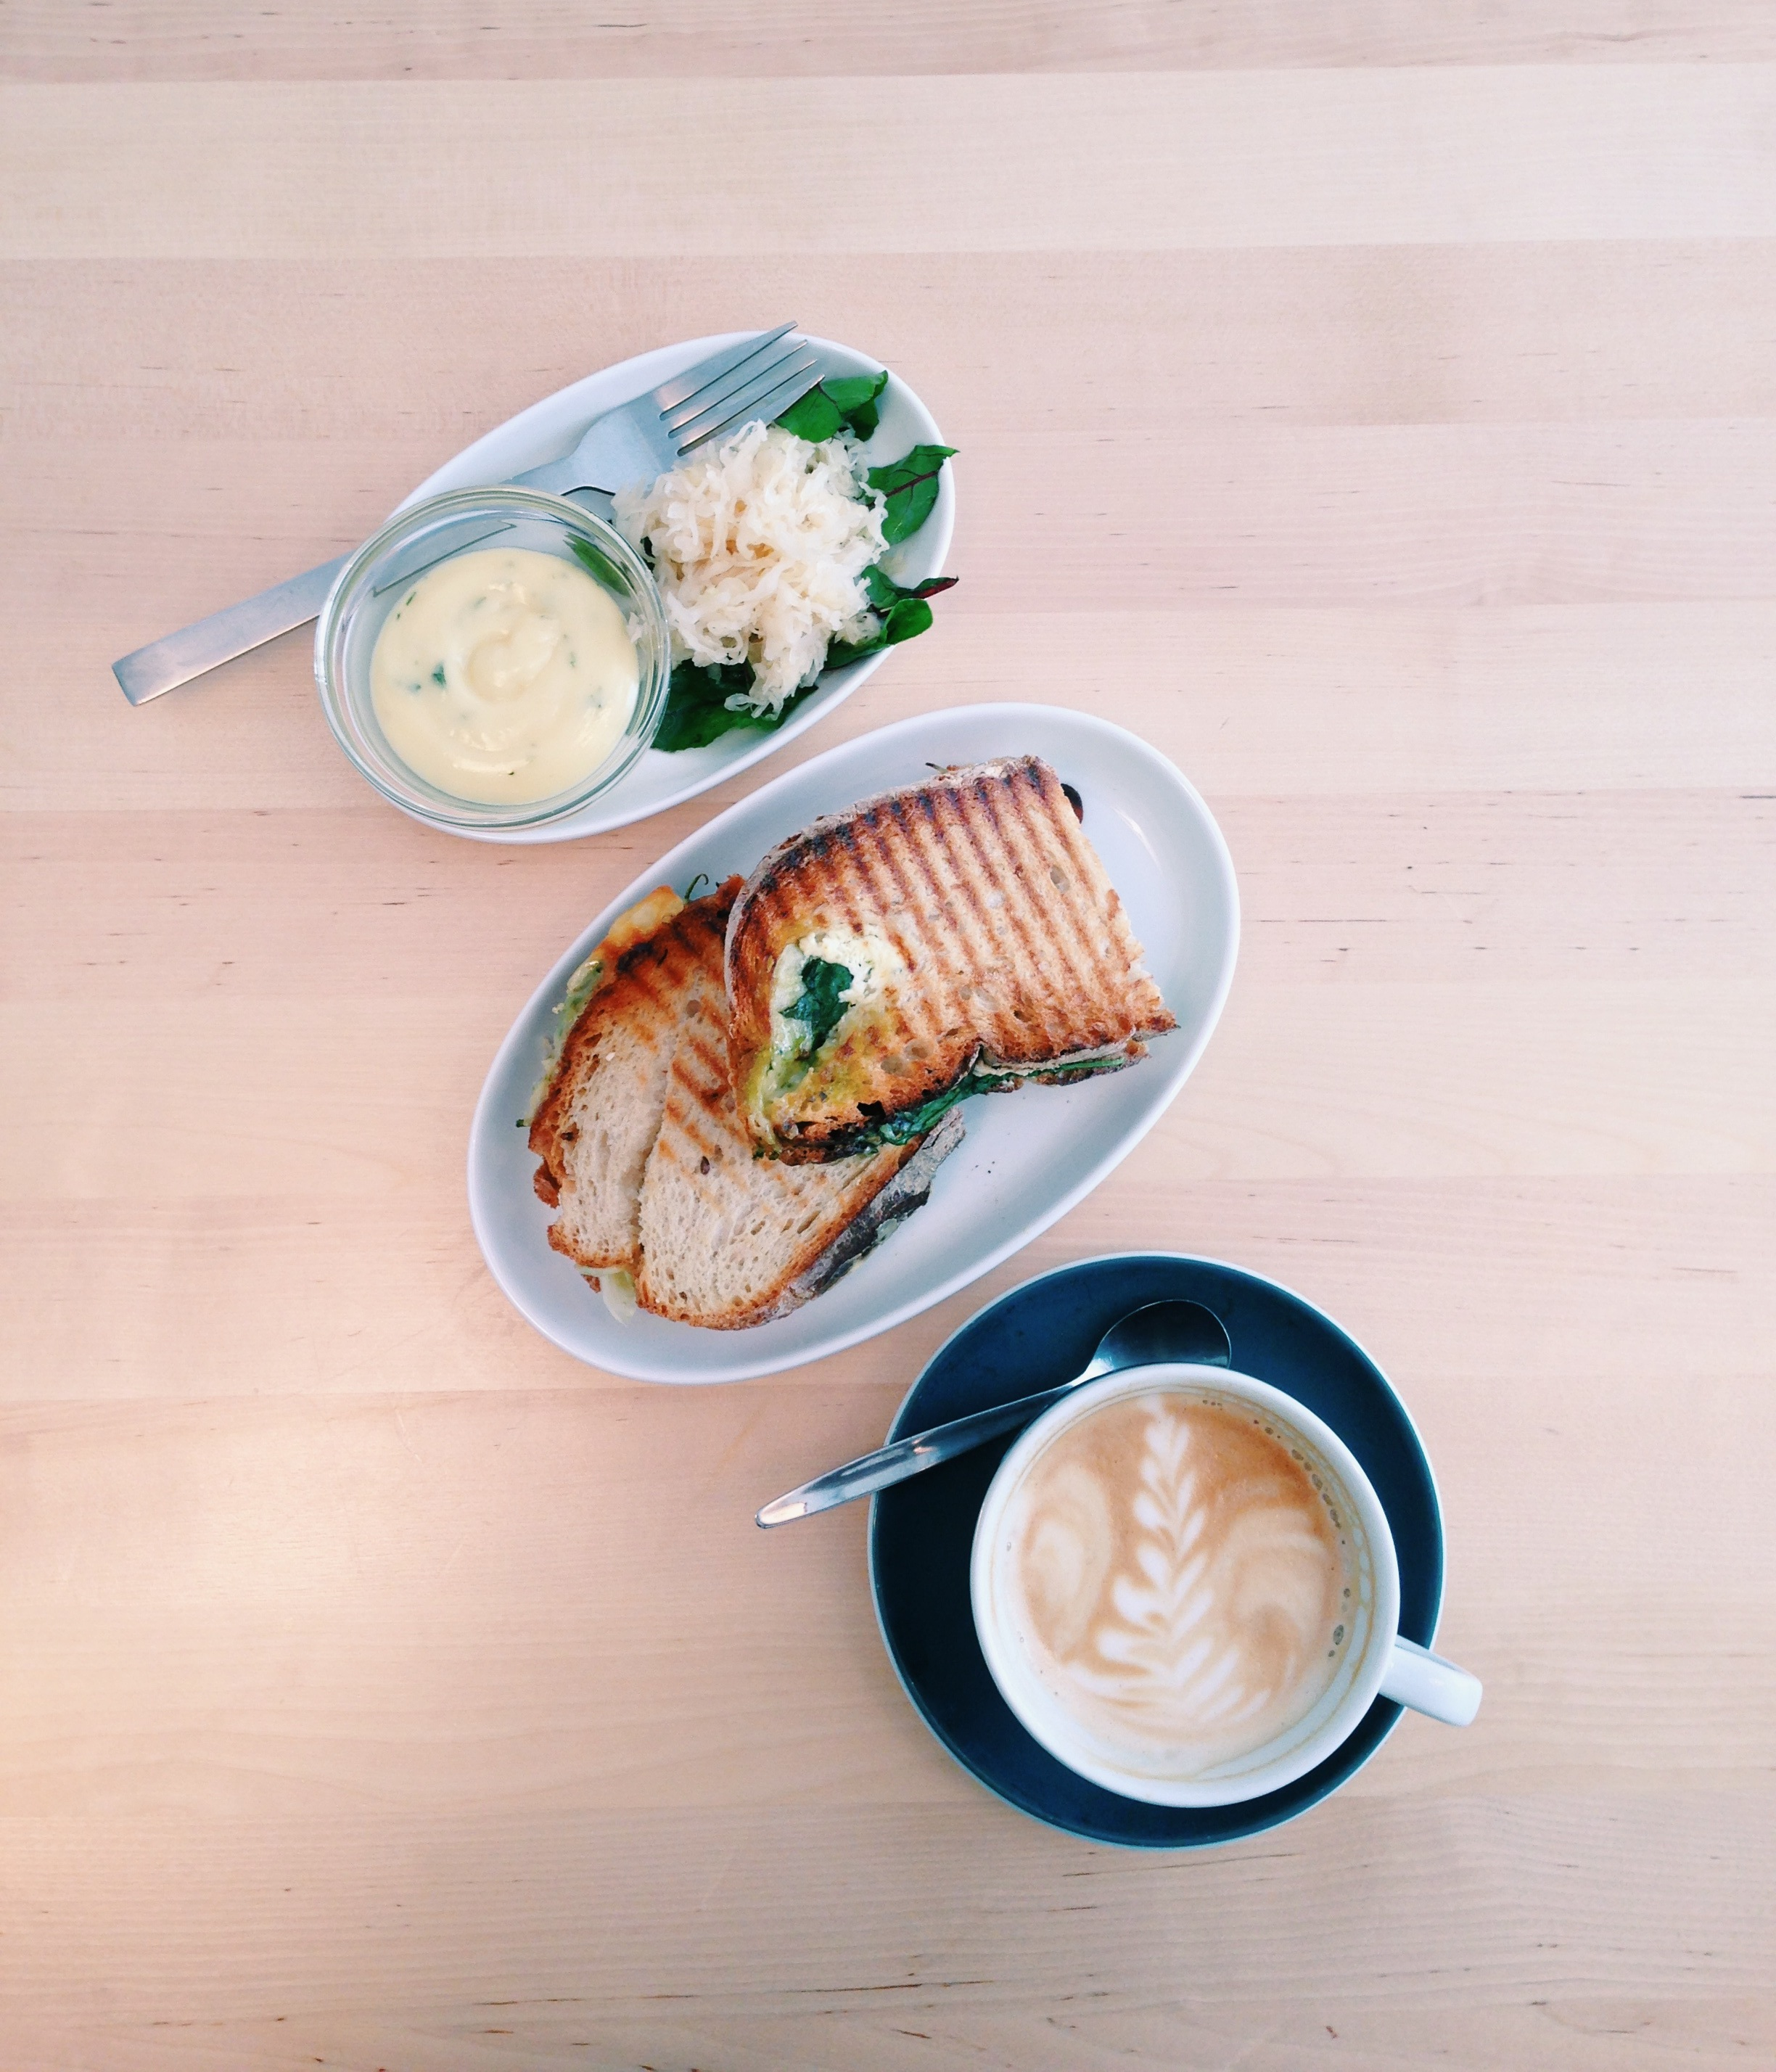 At Drop Coffee, cafe and coffee roastery. Sweden knwos their sandwiches and strong coffee.